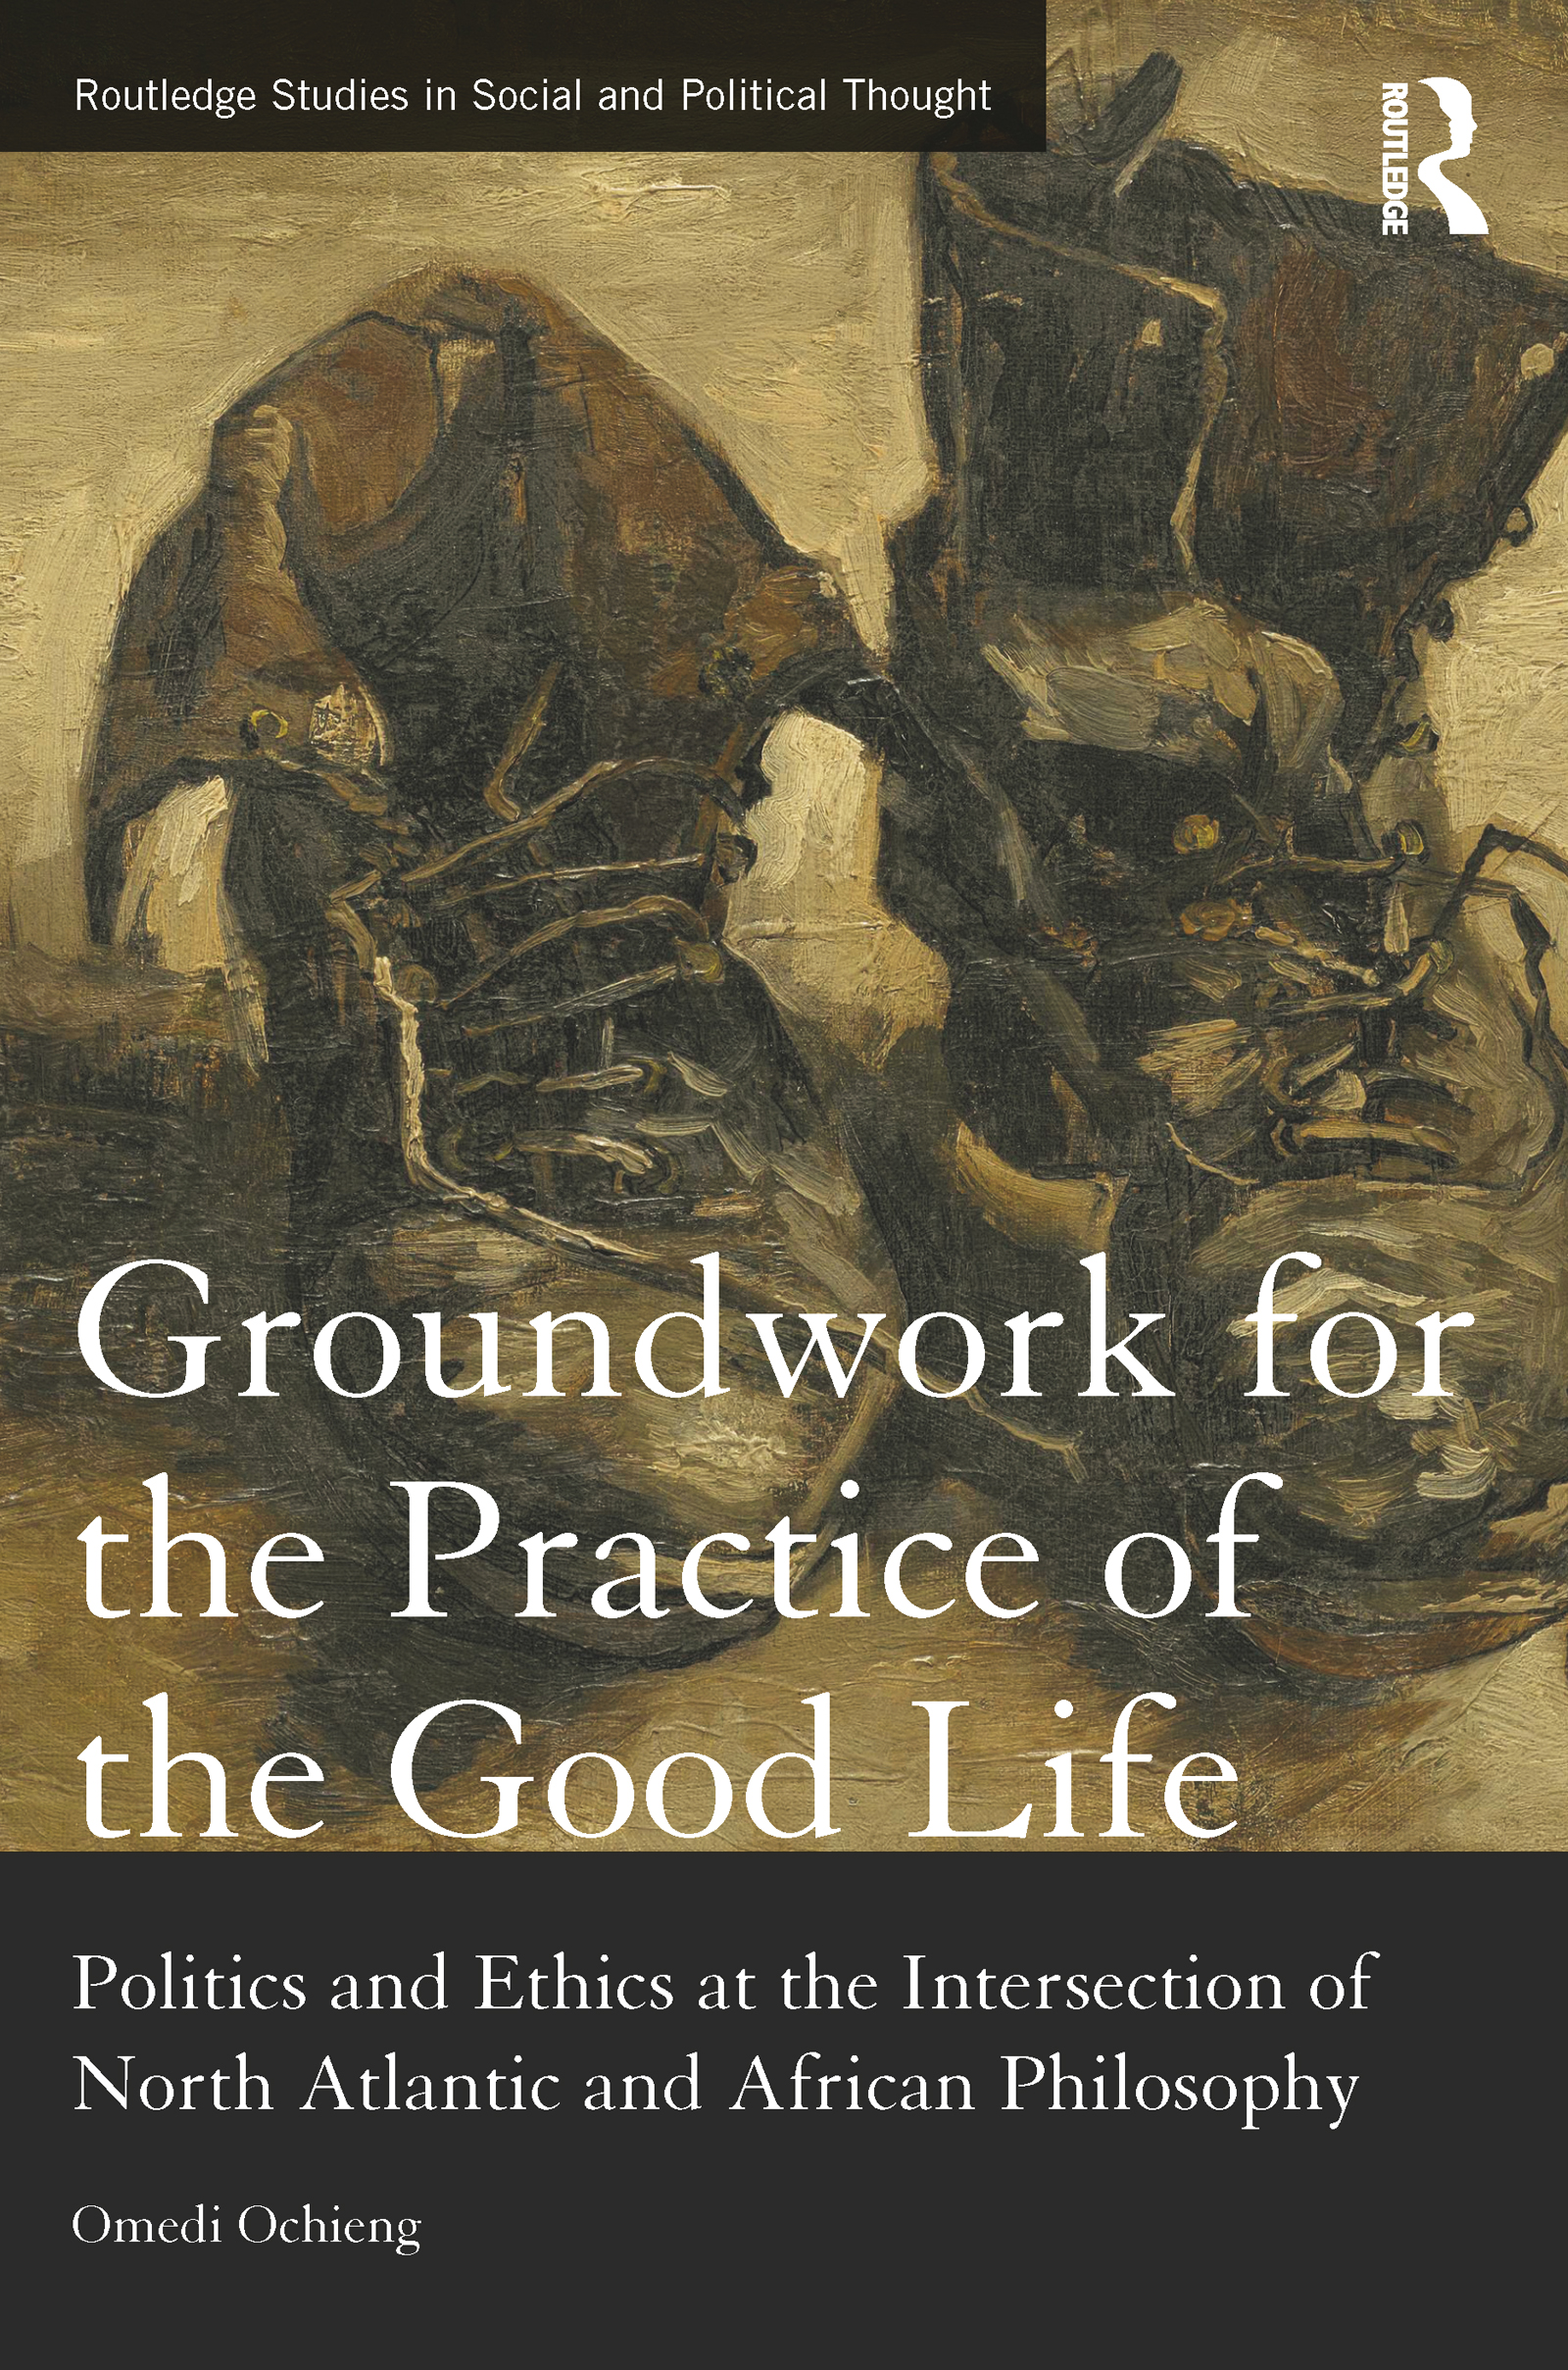 Groundwork for the Practice of the Good Life